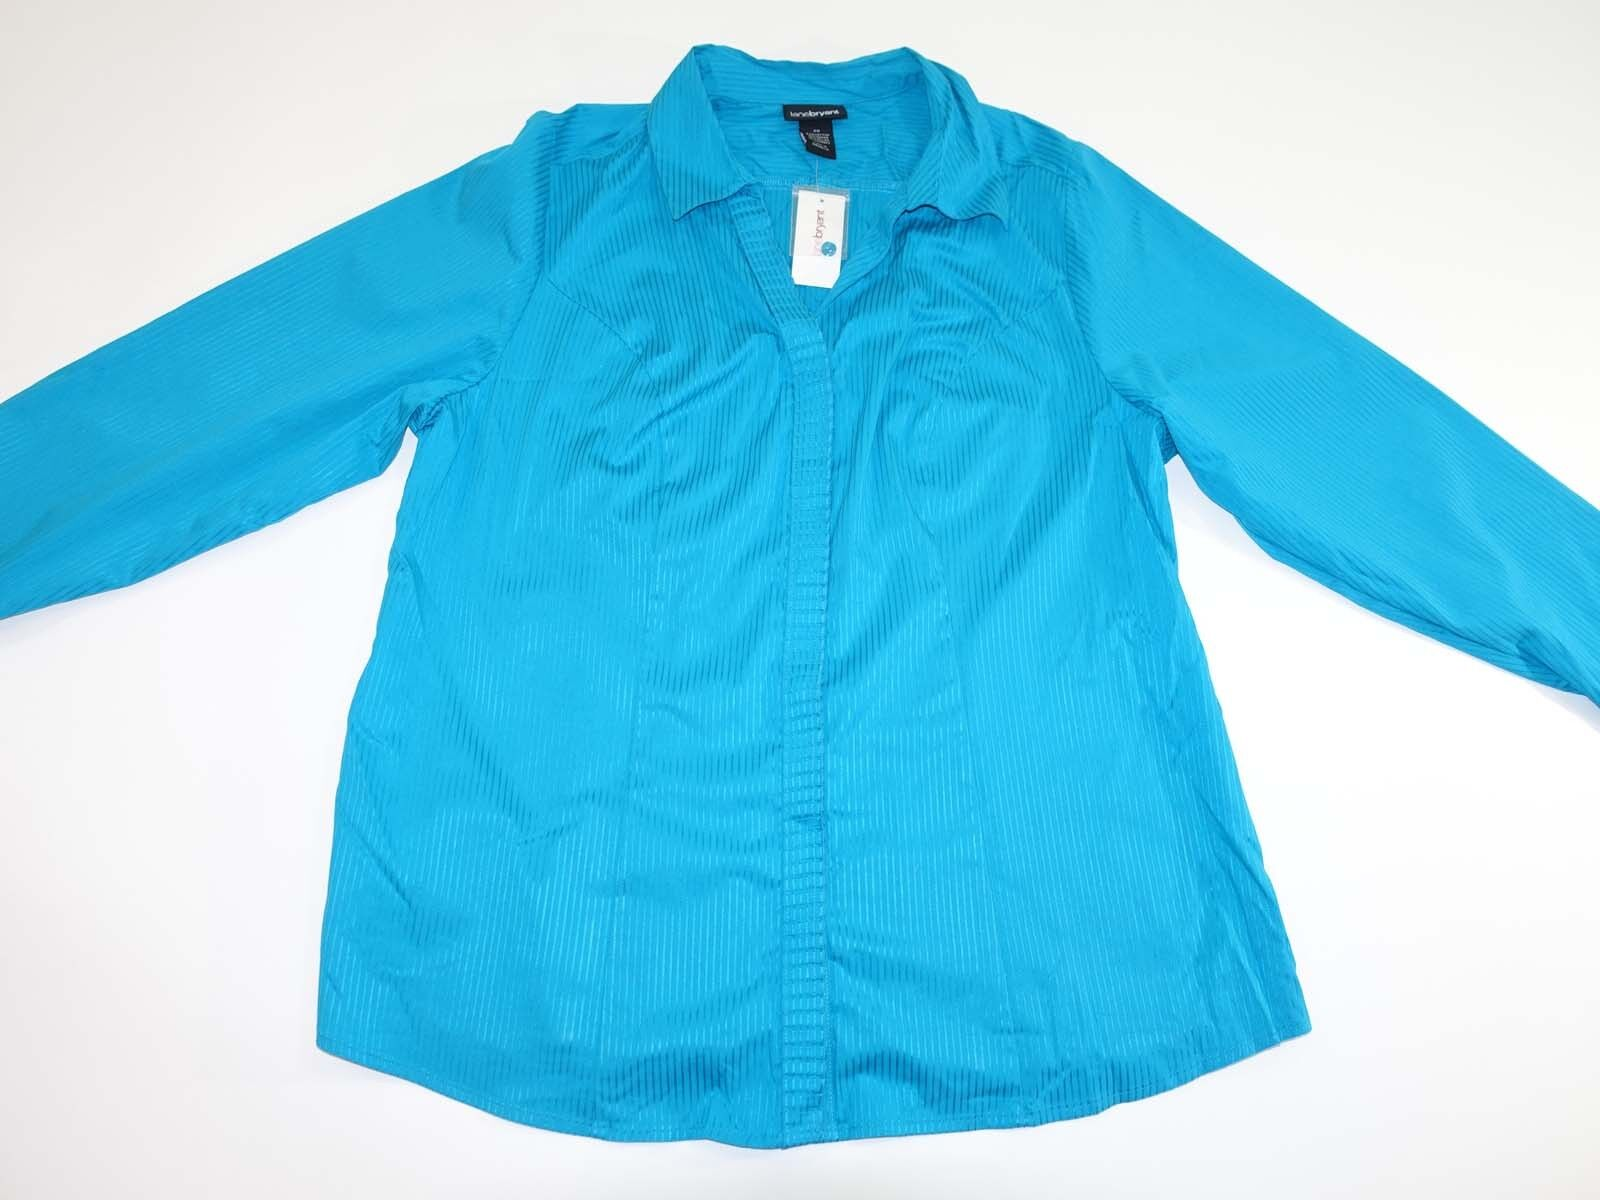 Lane Bryant Women's Button Down Shirt Size 20 NWT Long Sleeves Turquoise bluee LS